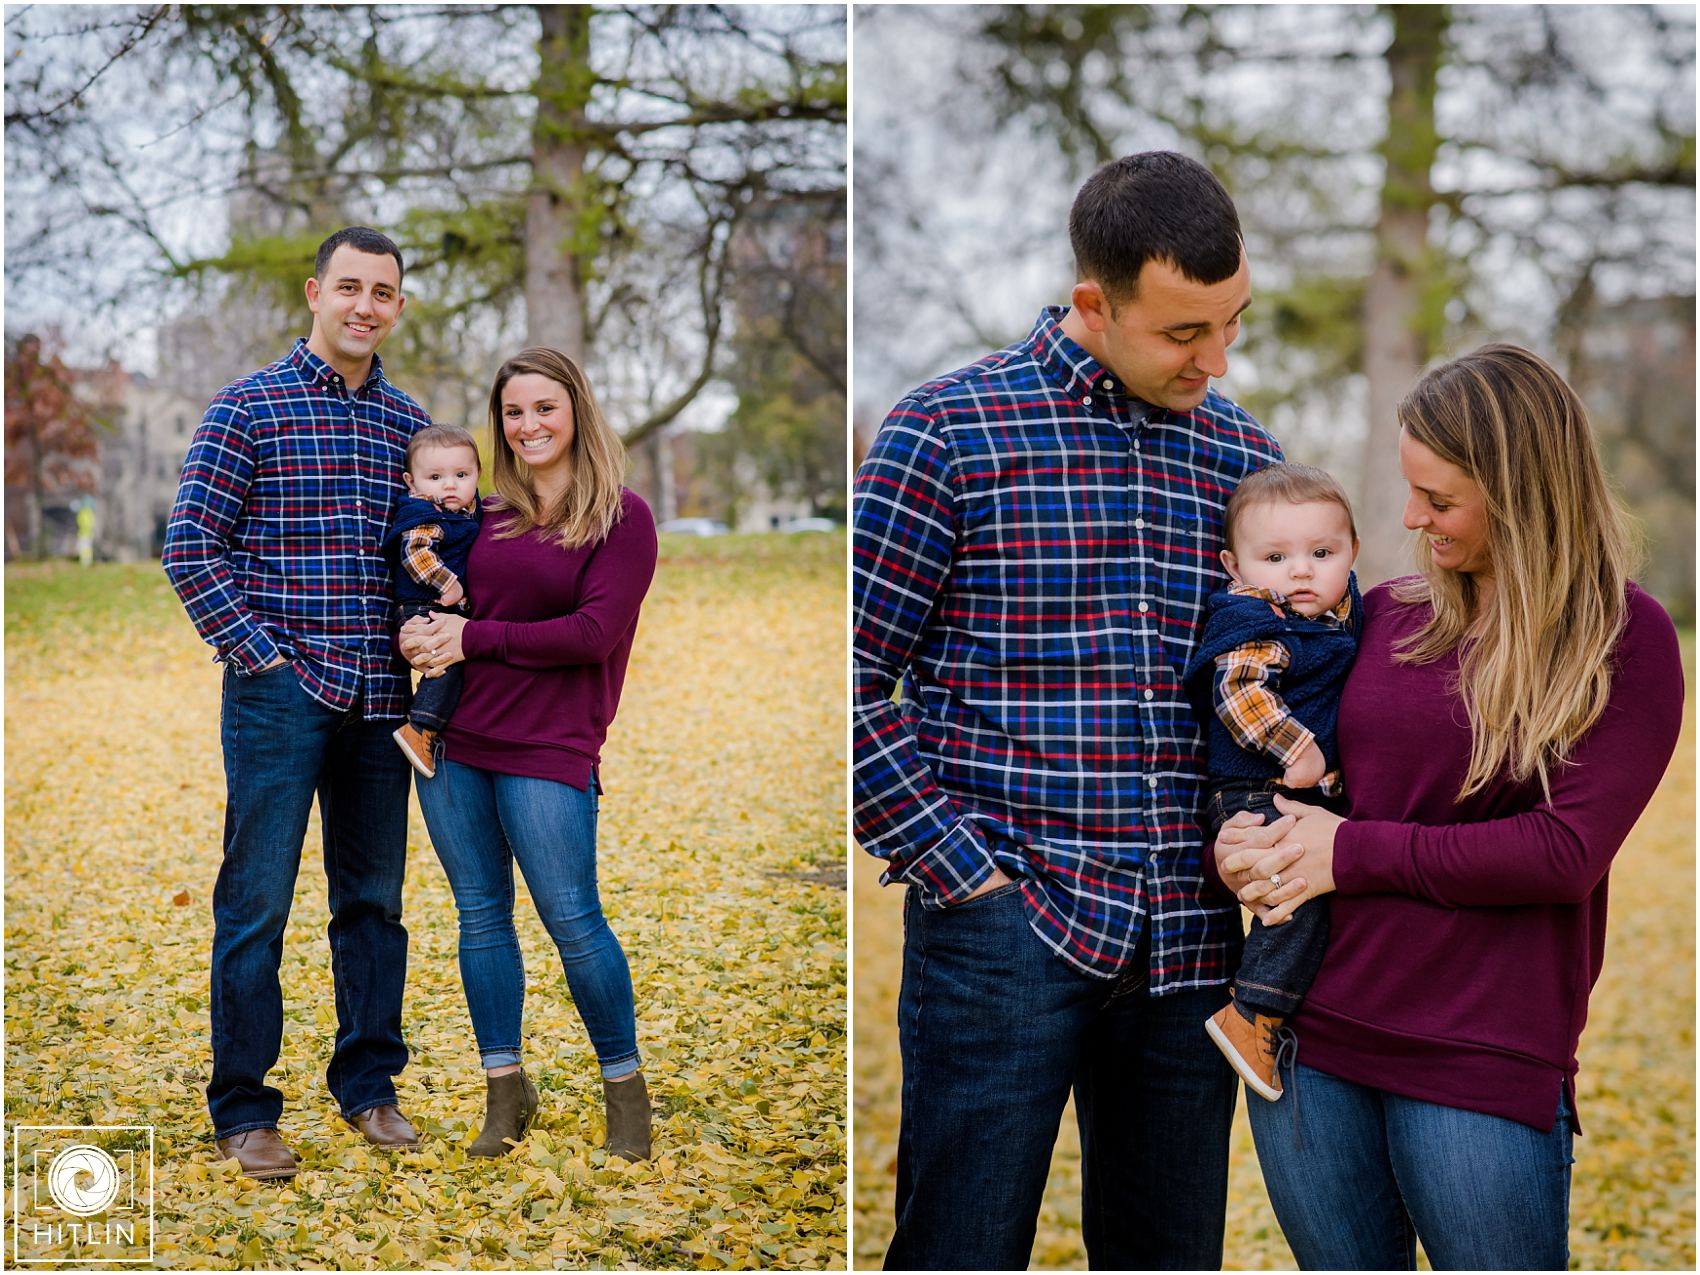 The Criscone Family Session